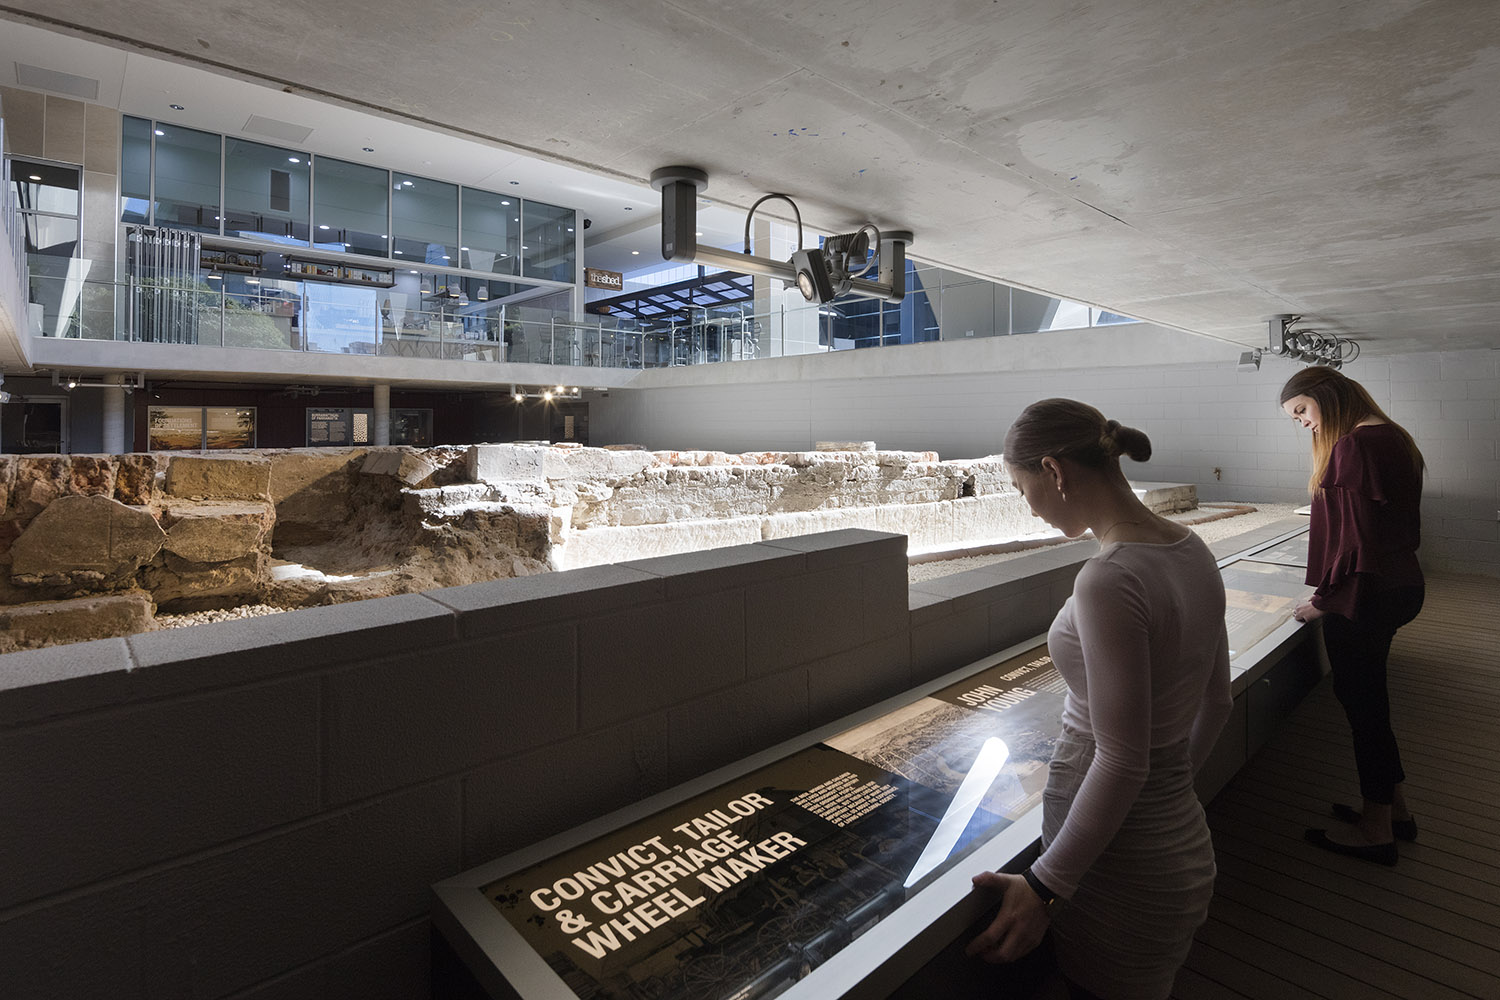 These stories are supported by the artefacts themselves, many of which are utilised throughout the exhibition in purpose-built display cases or entombed within large slabs of resin